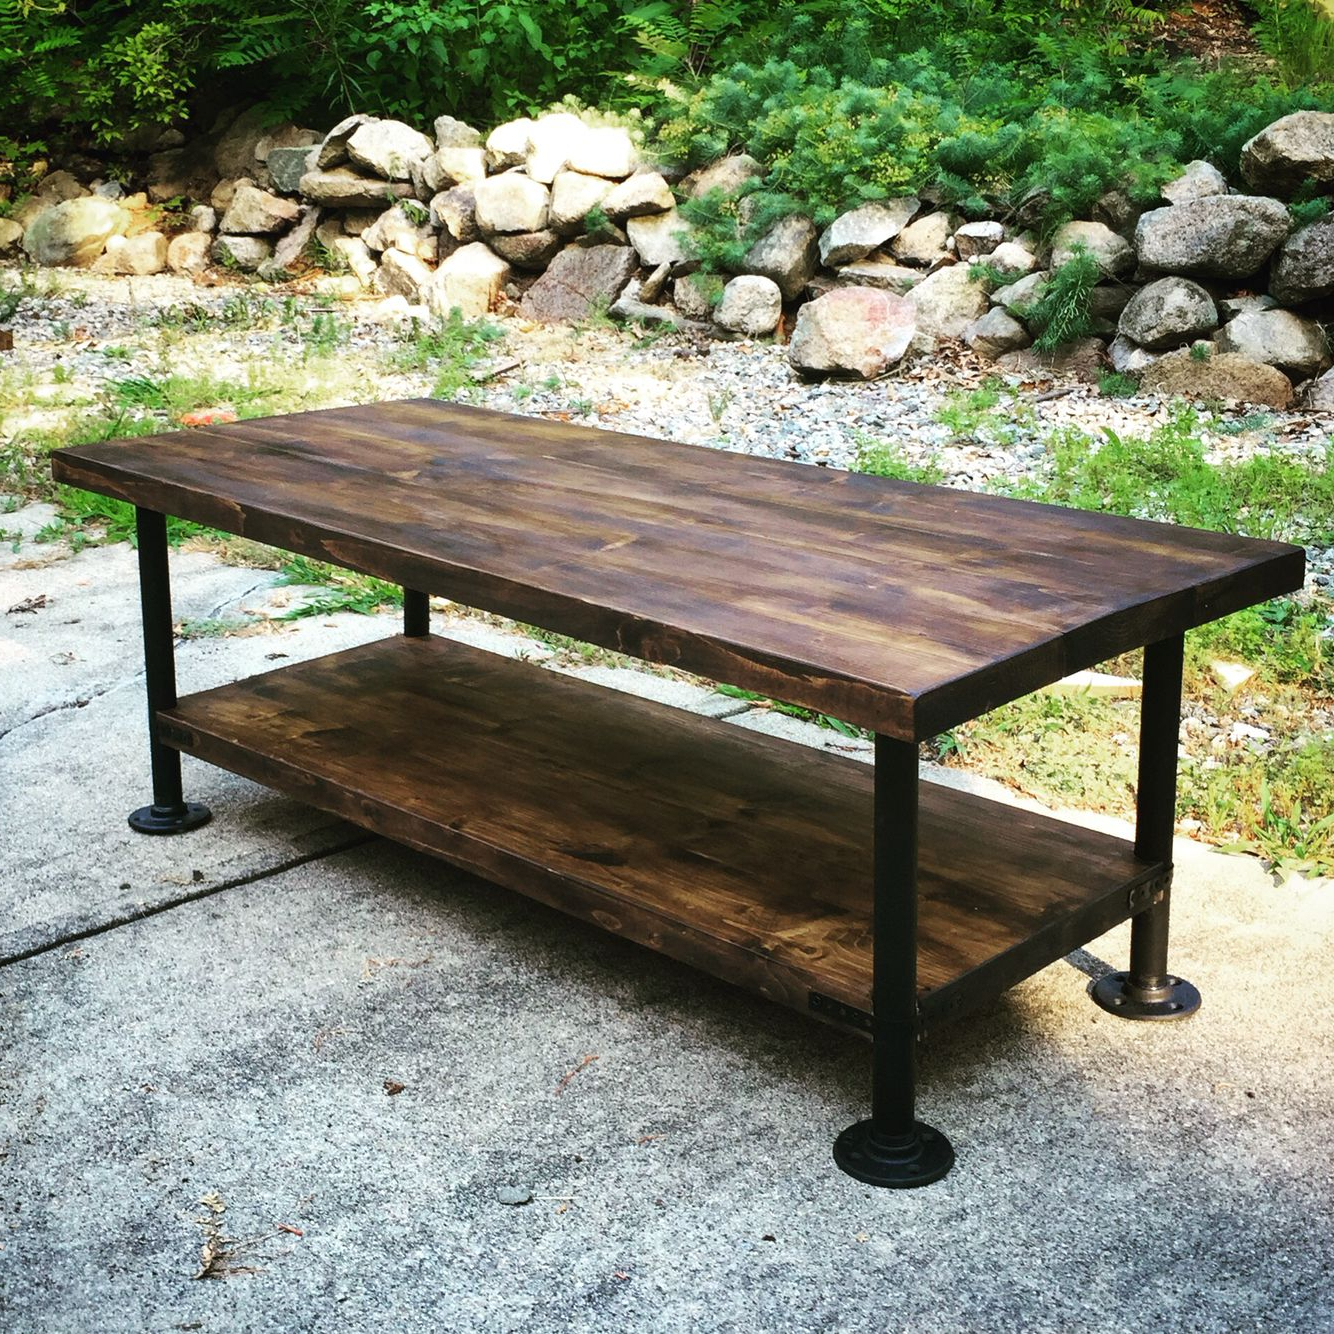 Industrial Style Wood Coffee Table With Steel Pipe Legs (View 9 of 20)